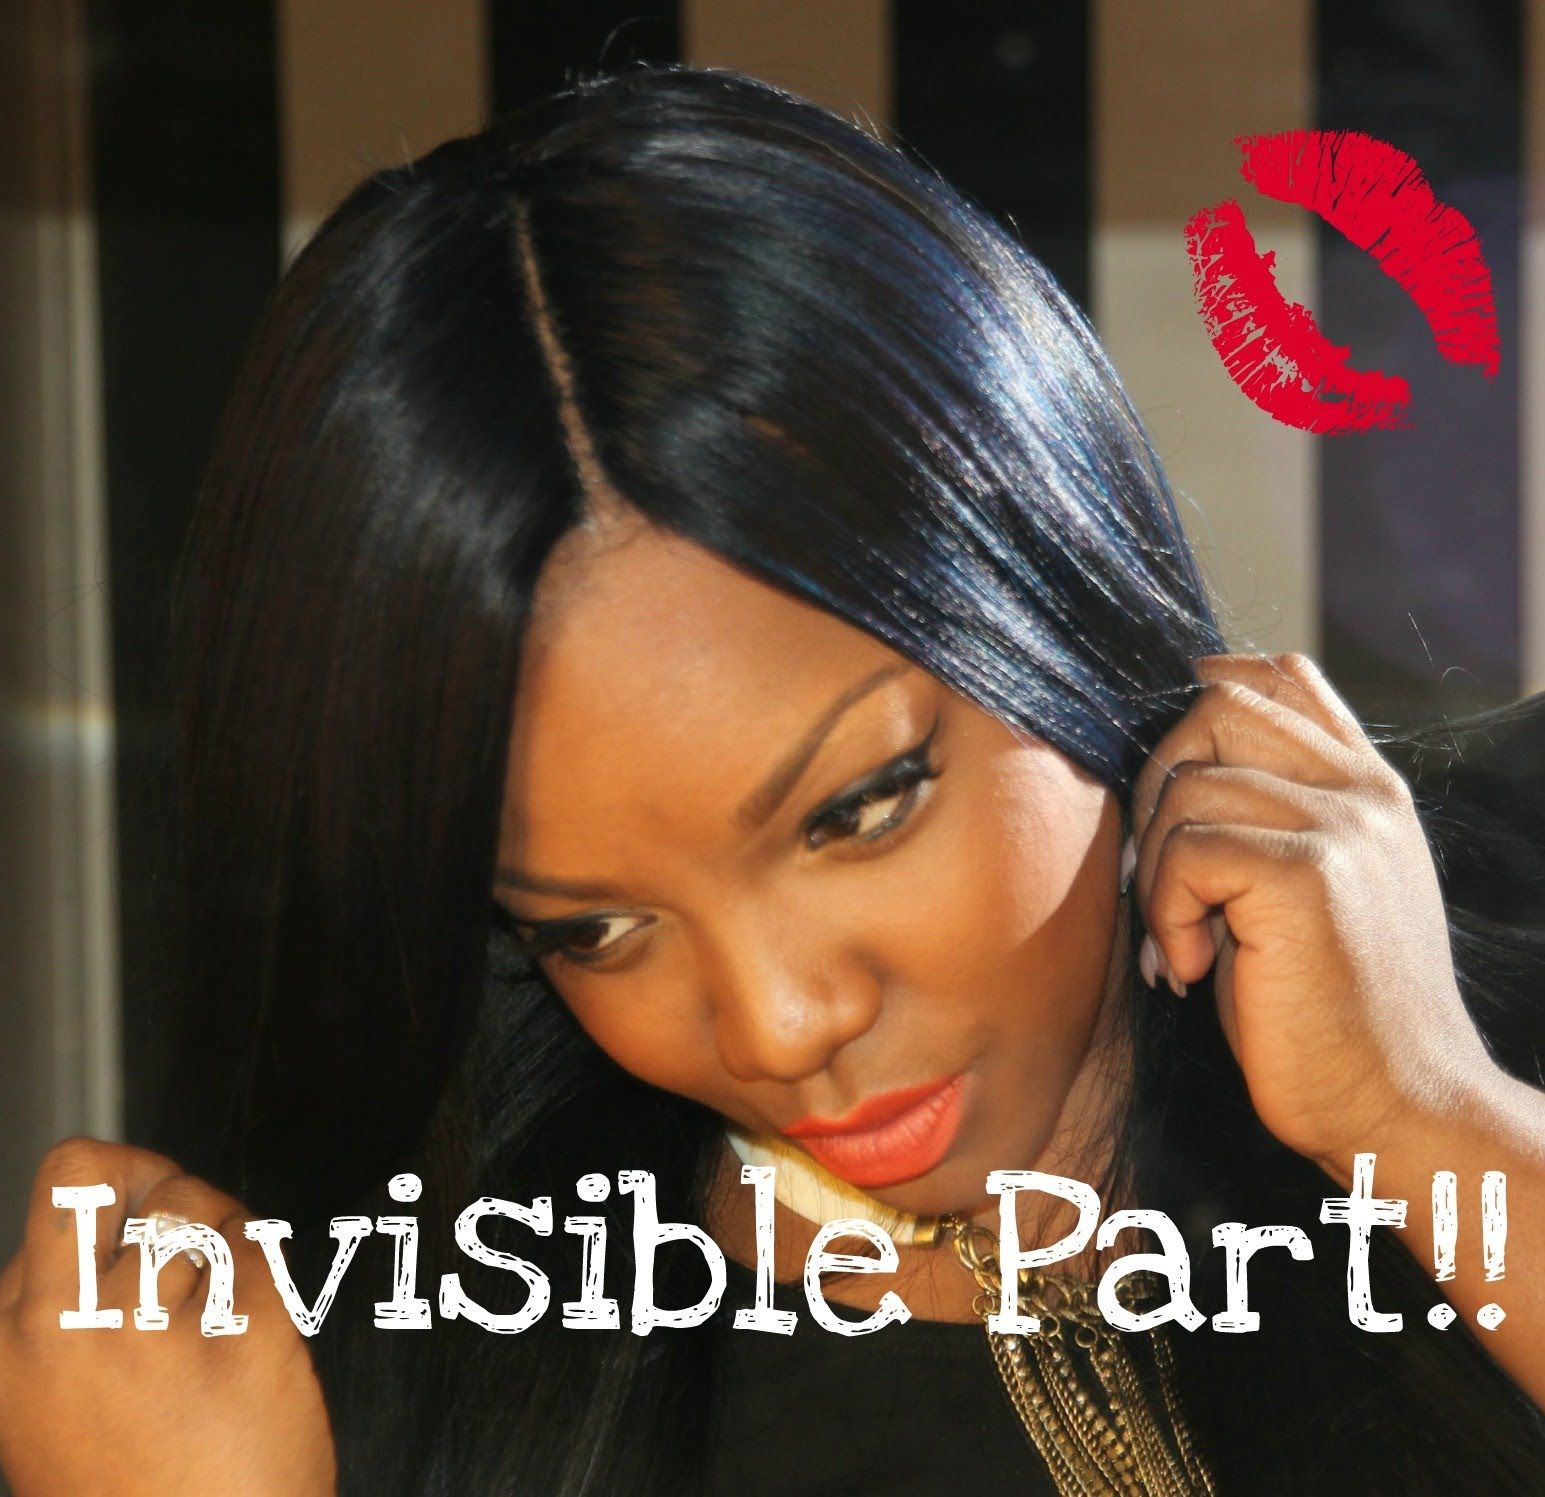 Hairstyles Without Weave How To Flawless Invisible Part Diy Pinterest Instagram